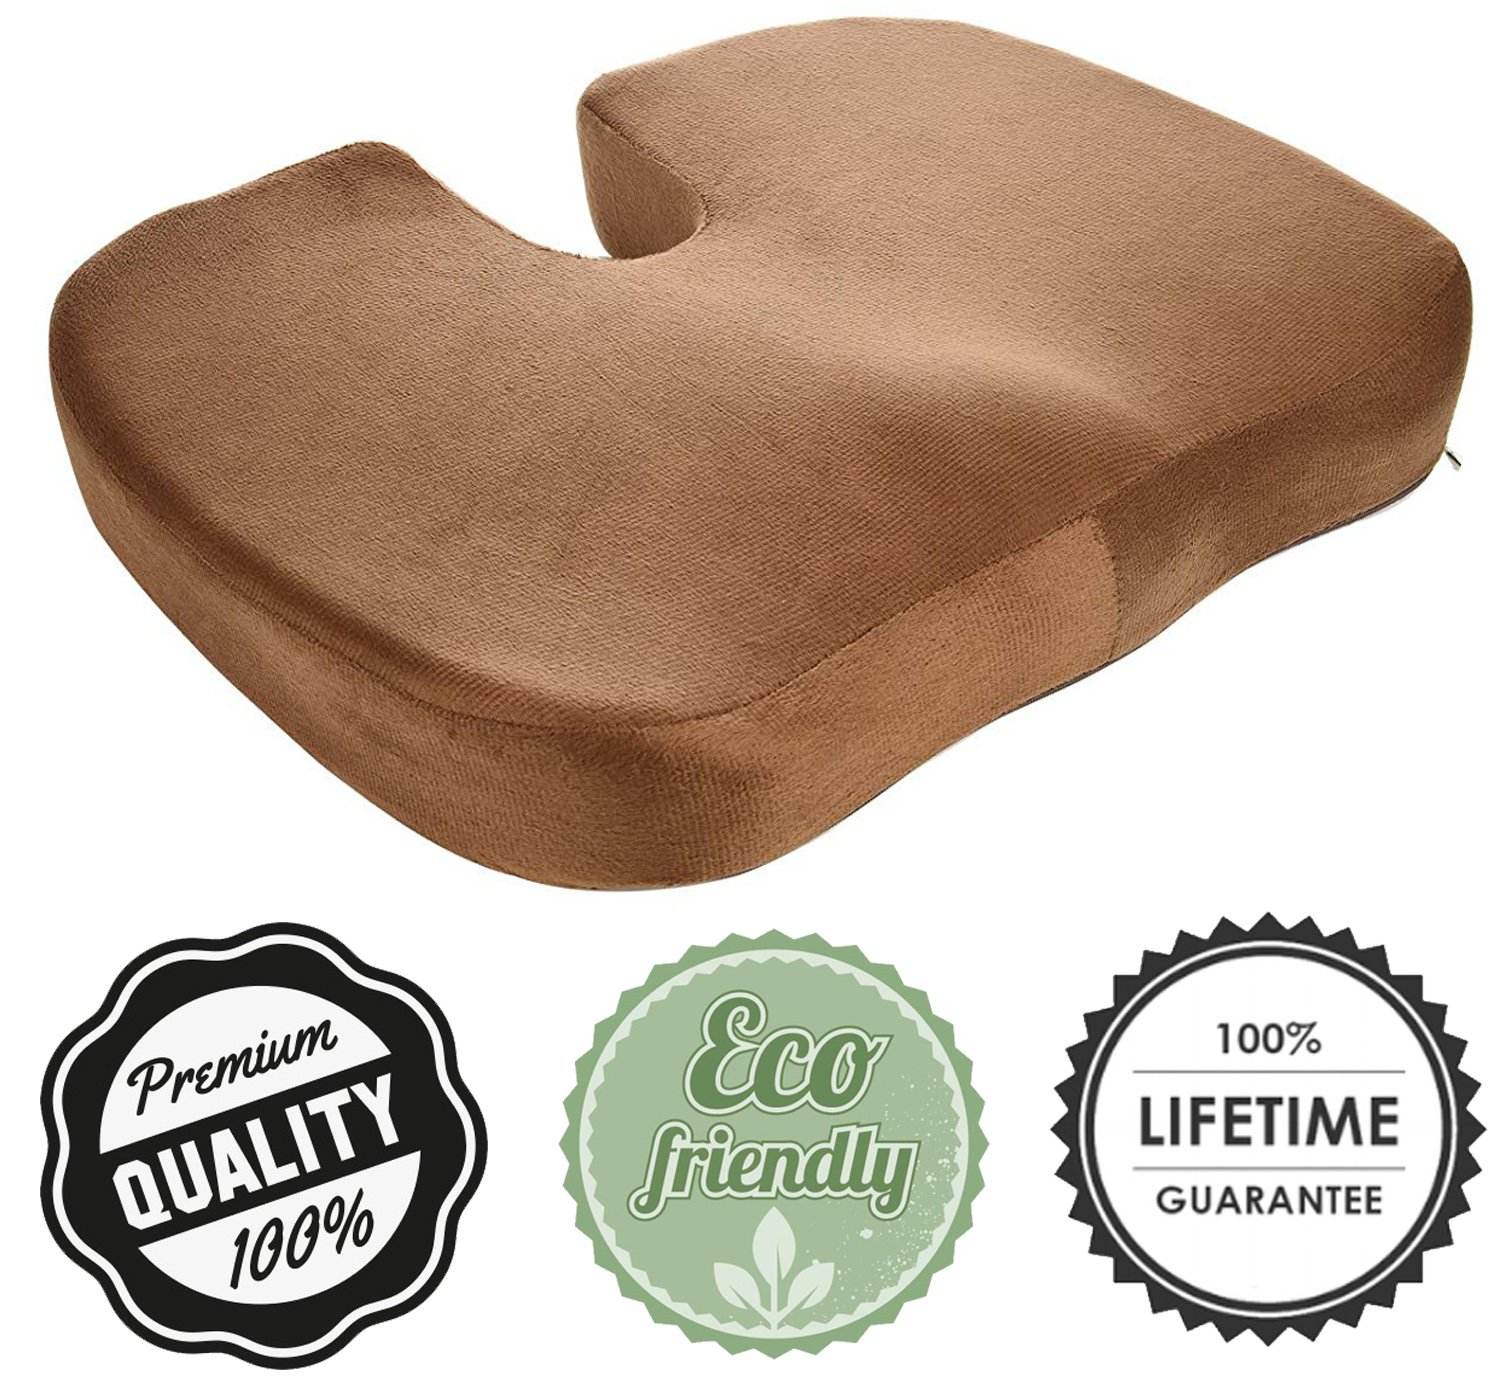 Deluxe Seat Cushion 100% Pure Memory Foam - Orthopedic Design to Relieve Back, Sciatica and Tailbone Pain - Perfect for Office Chair, Car seat - Brown Color